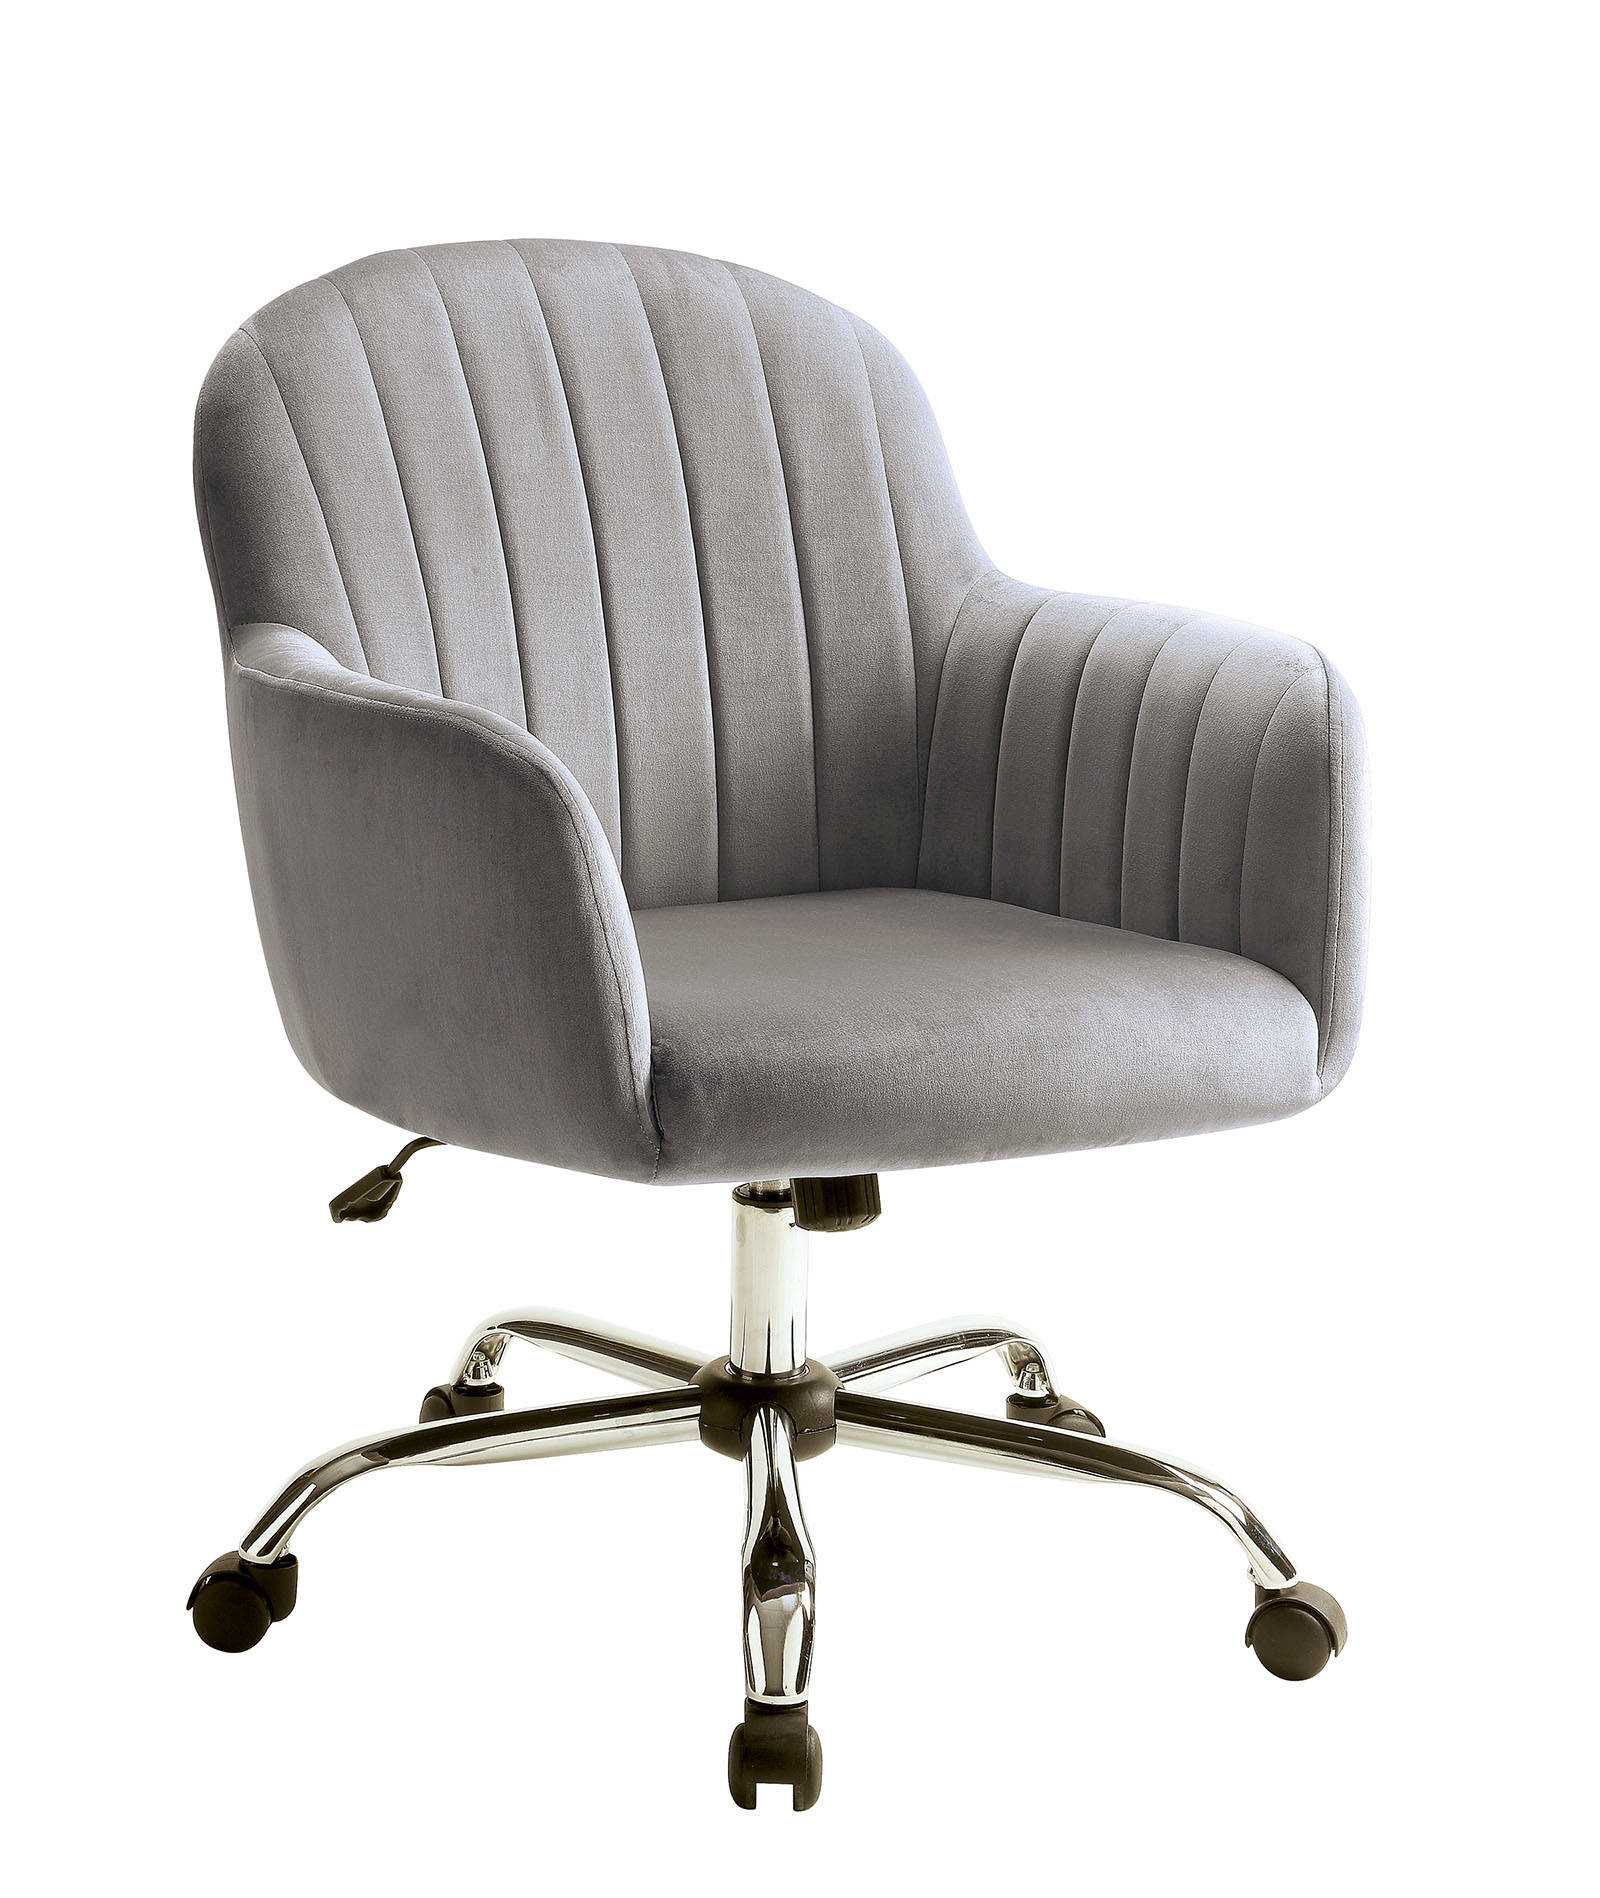 Furniture Of America Valery Gray Office Chair